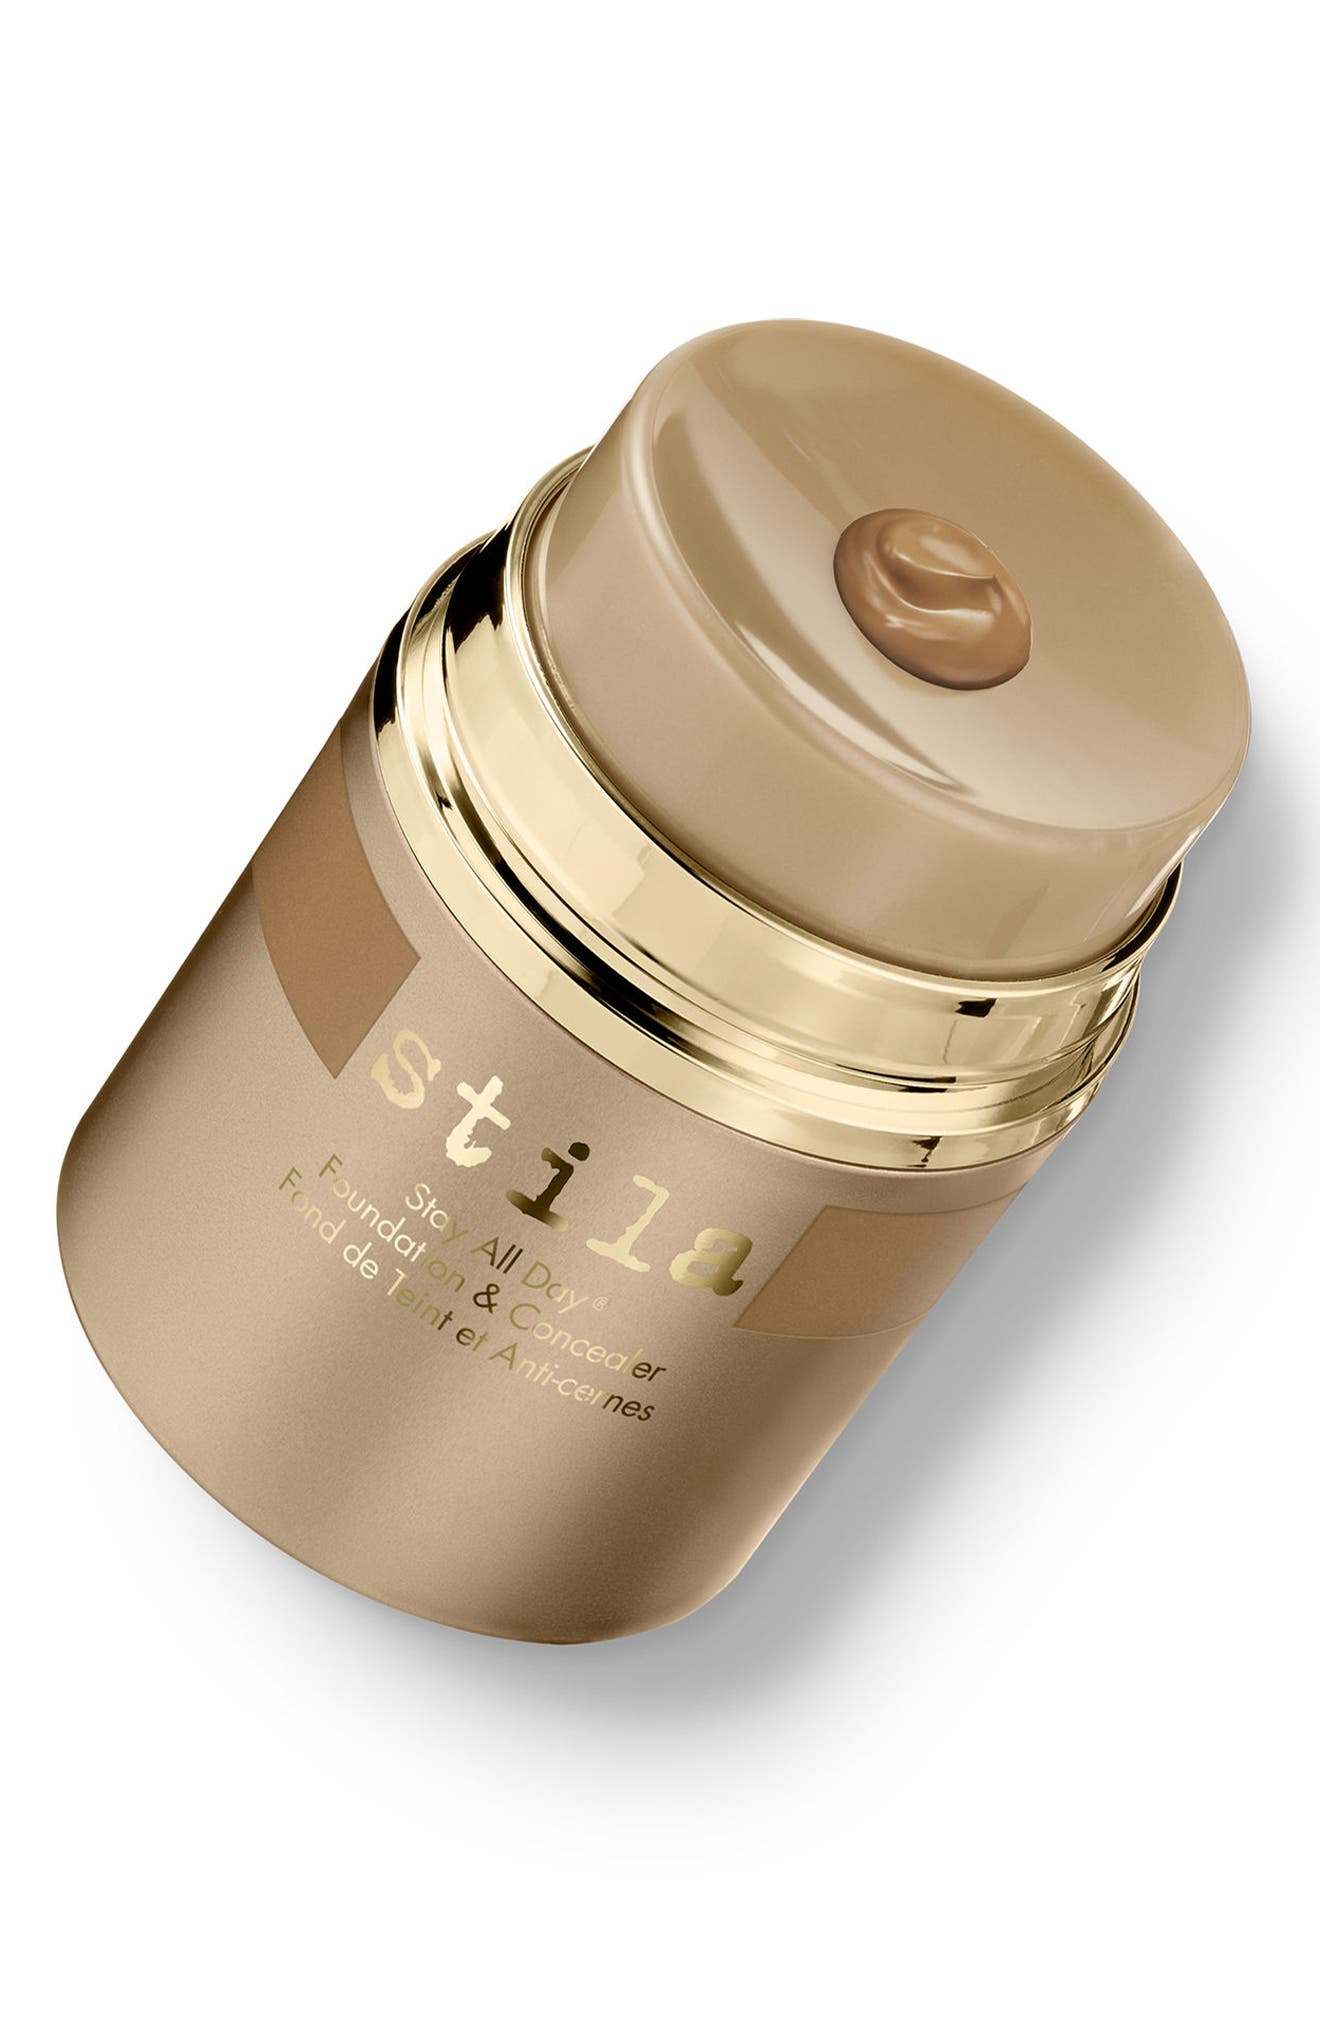 Stay All Day<sup>®</sup> Foundation & Concealer,                             Alternate thumbnail 3, color,                             STAY AD FOUND CONC CARAMEL 12